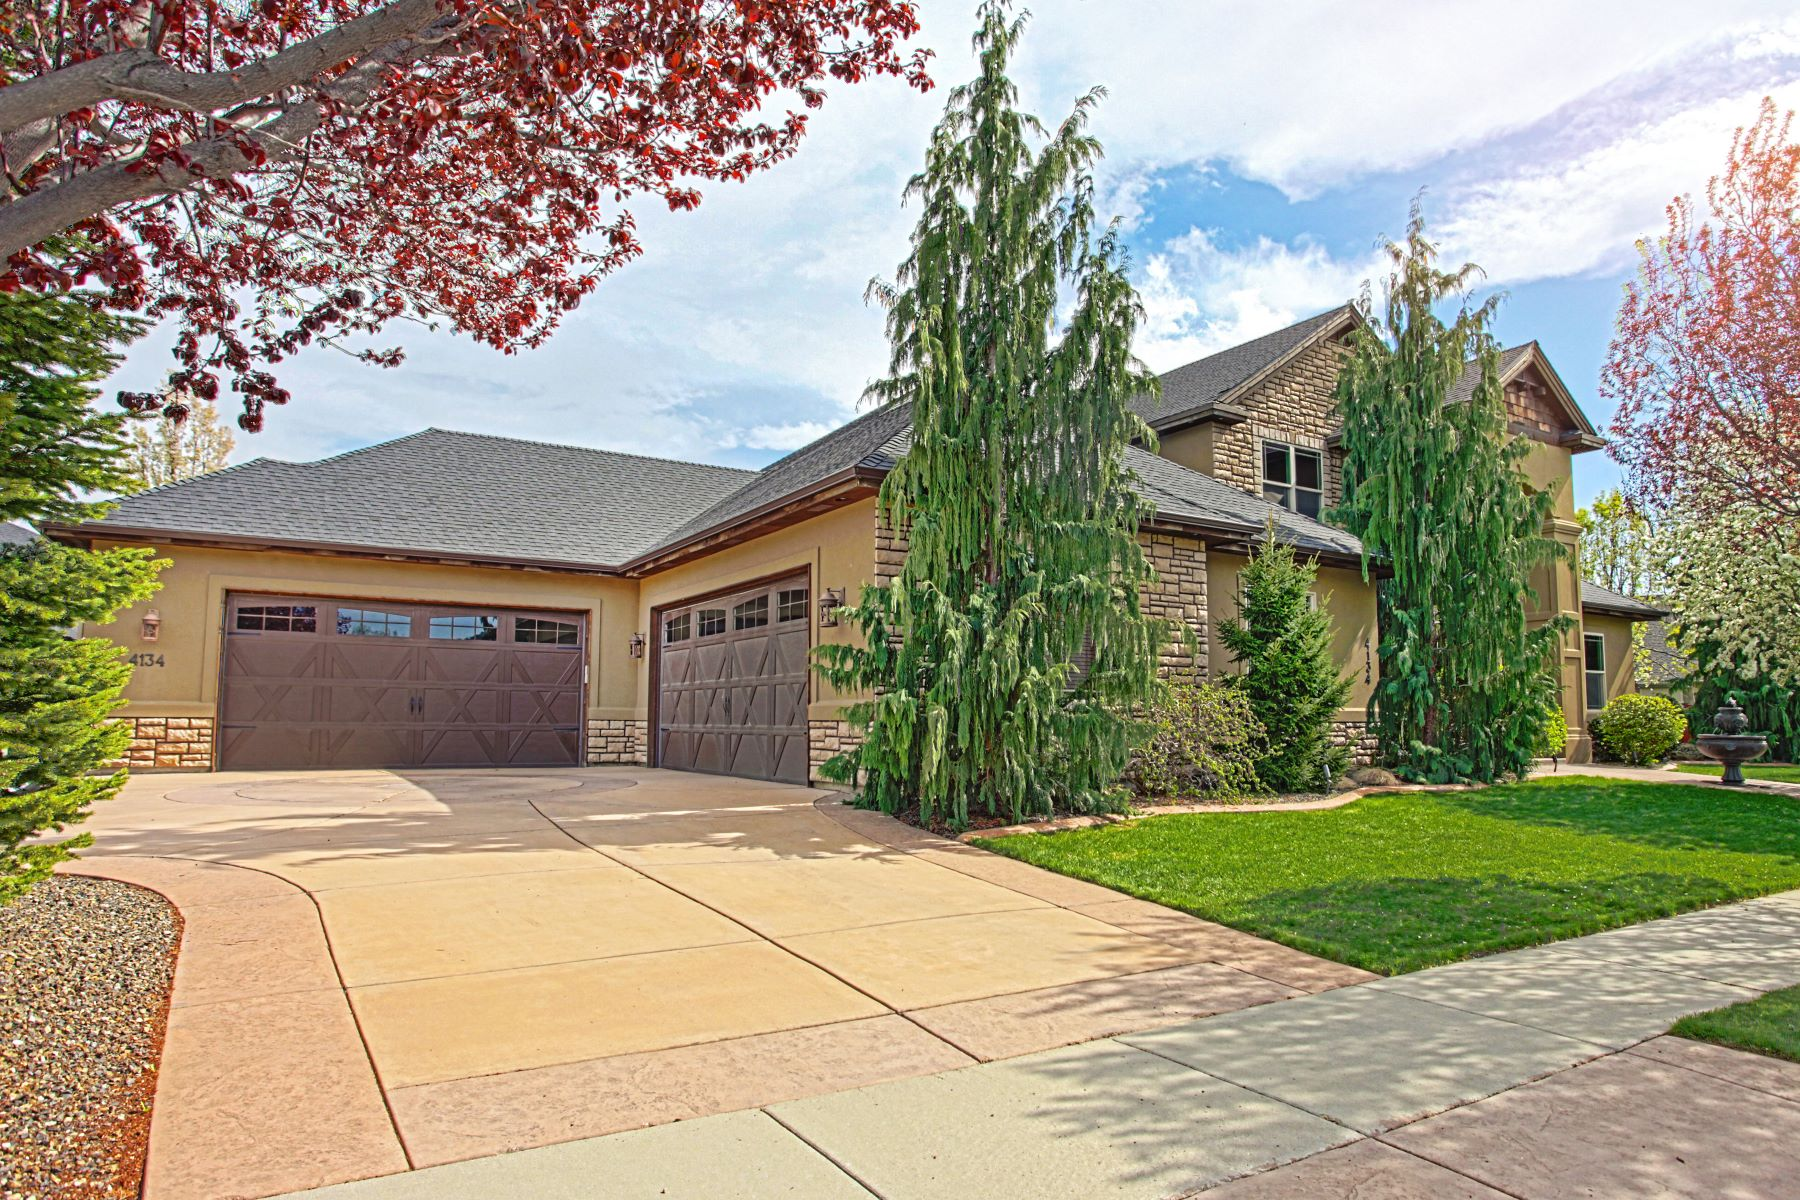 Single Family Home for Sale at 4134 Heritage Woods Way, Meridian 4134 N Heritage Woods Way Meridian, Idaho, 83646 United States